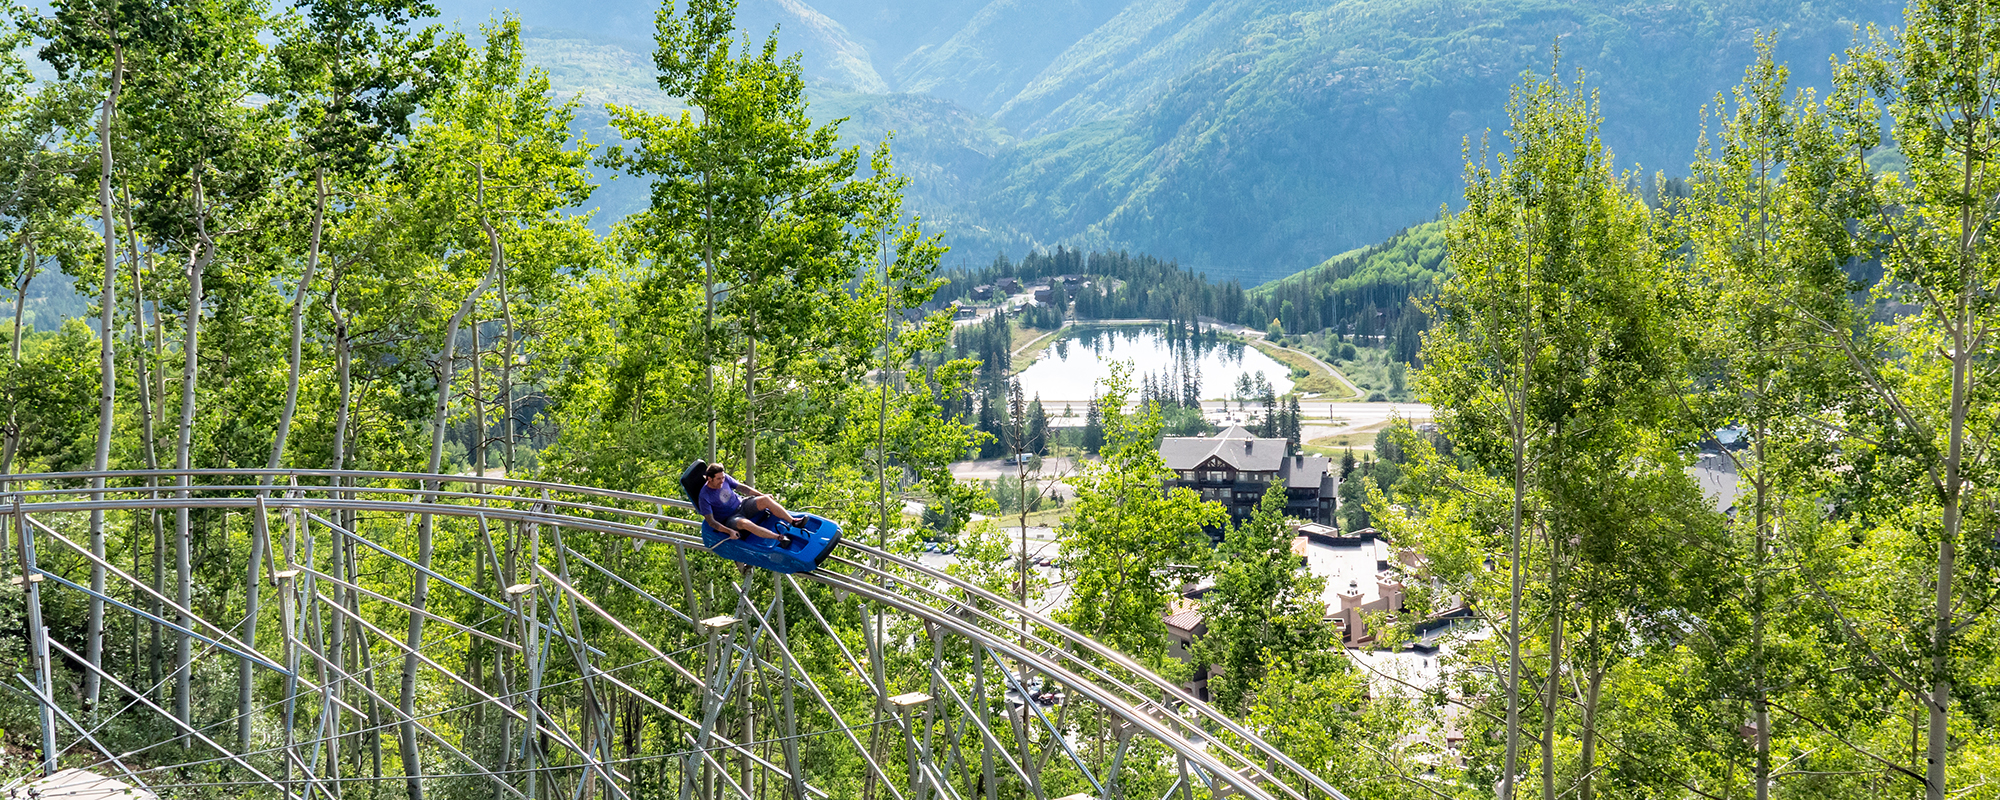 Overview of the coaster with the mountains in the background